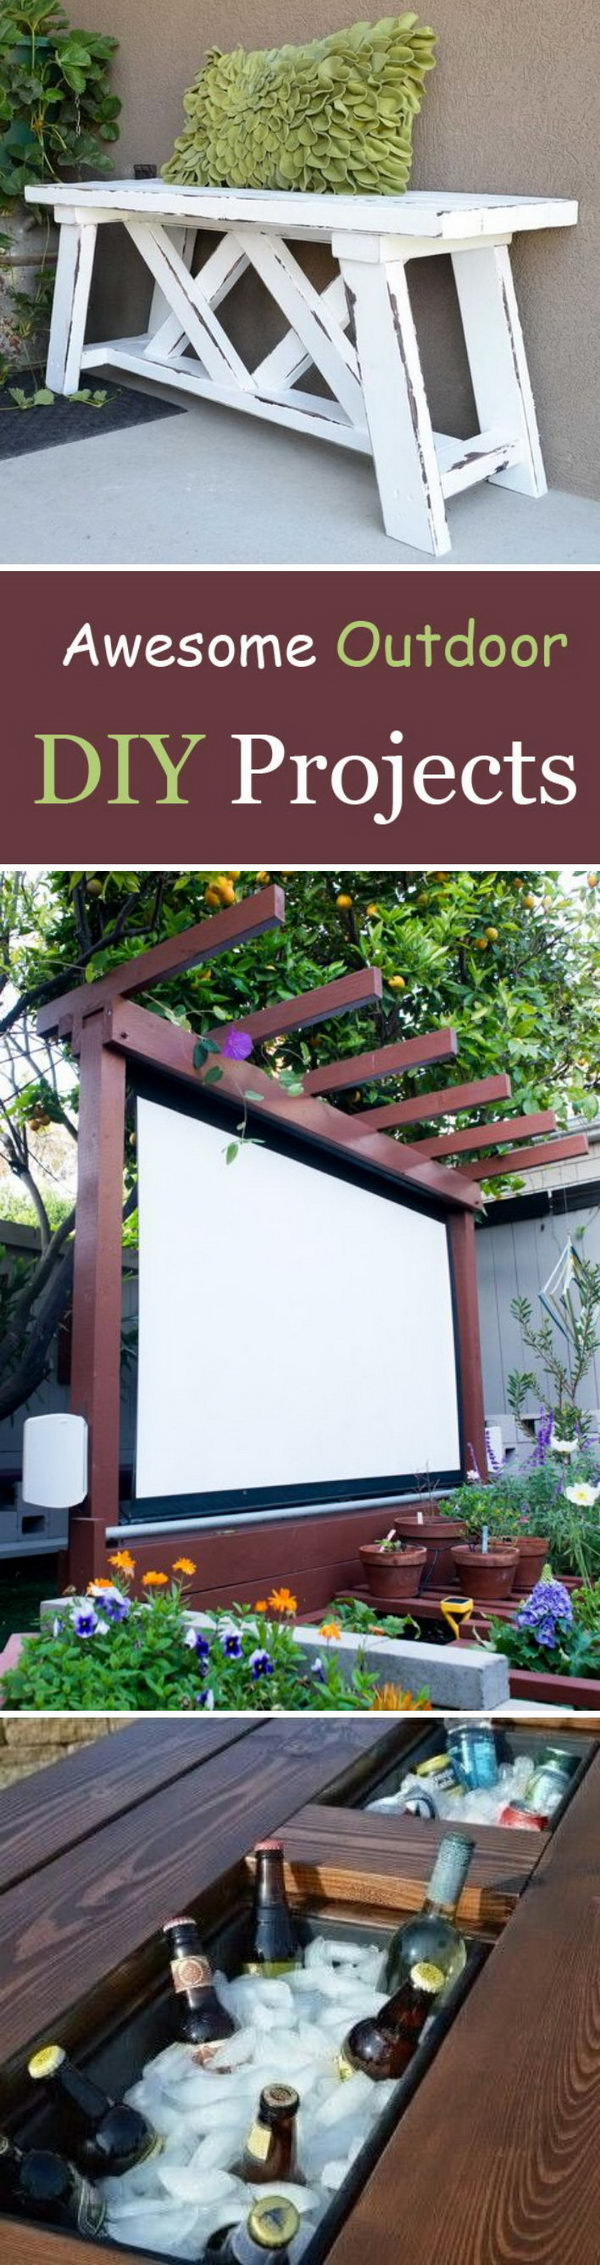 Awesome Outdoor DIY Projects.